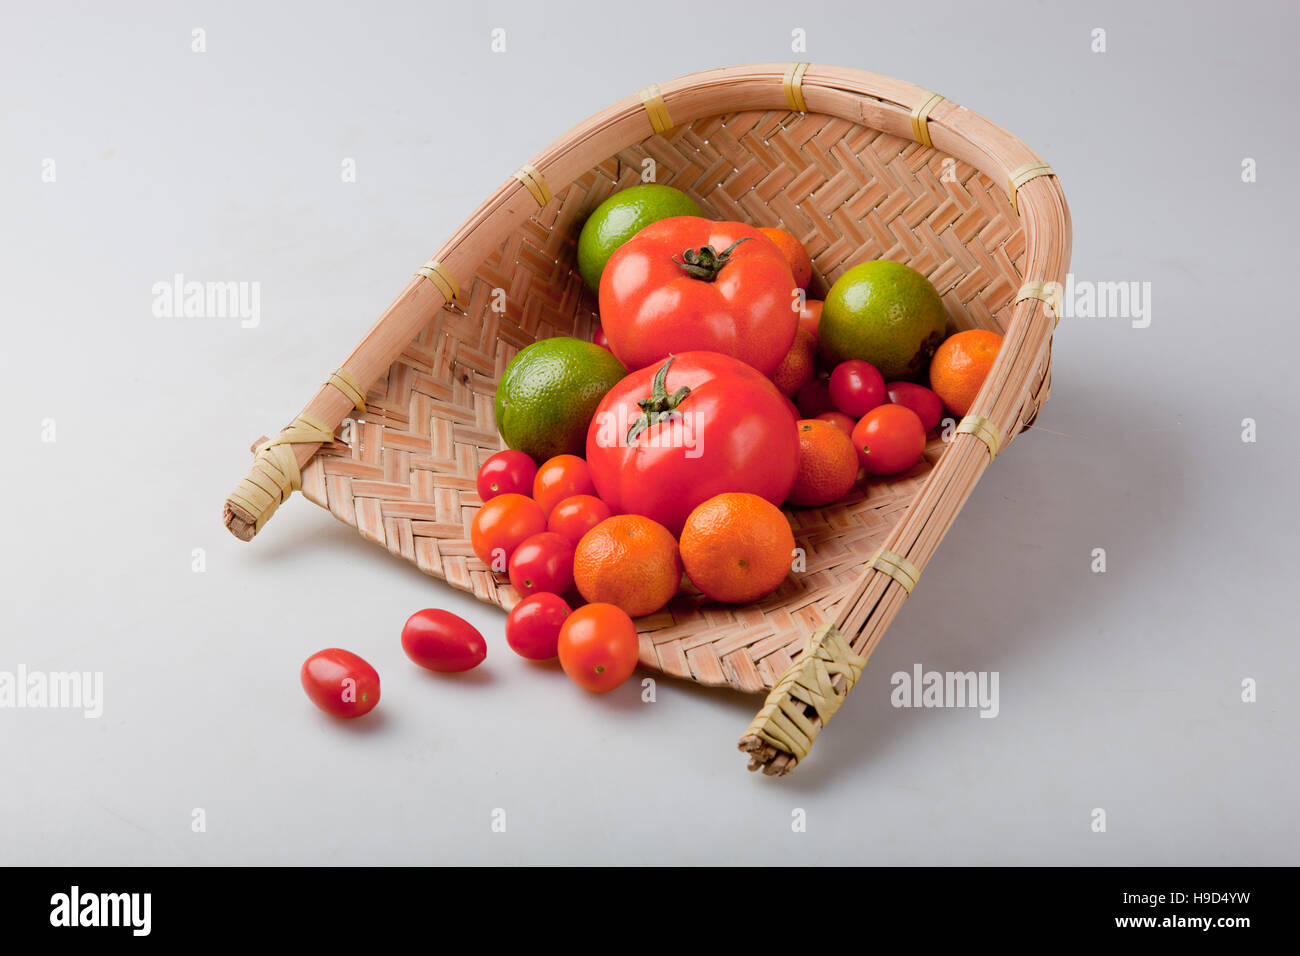 Assortment of exotic fruits in basket, isolated on white - Stock Image